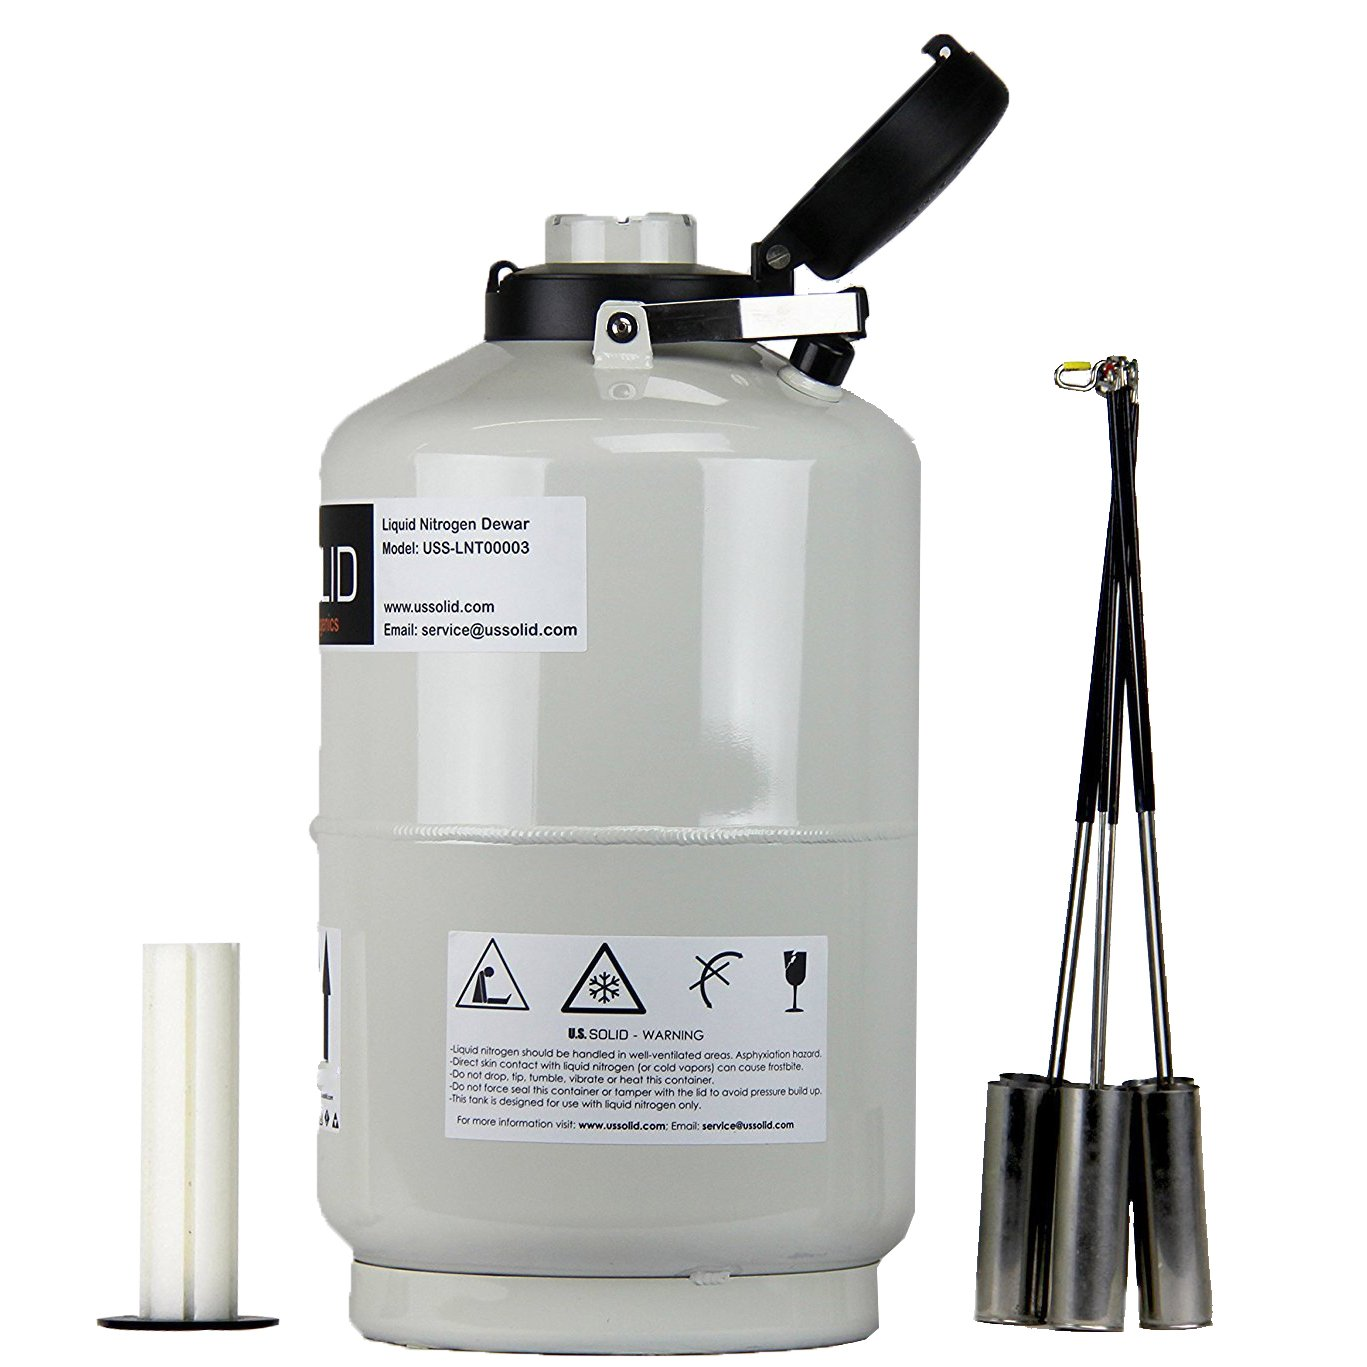 size 40 1bf5f 42edd U.S.SOLID 10L Cryogenic Container Liquid Nitrogen LN2 Tank Dewar with  Straps 6 Canisters